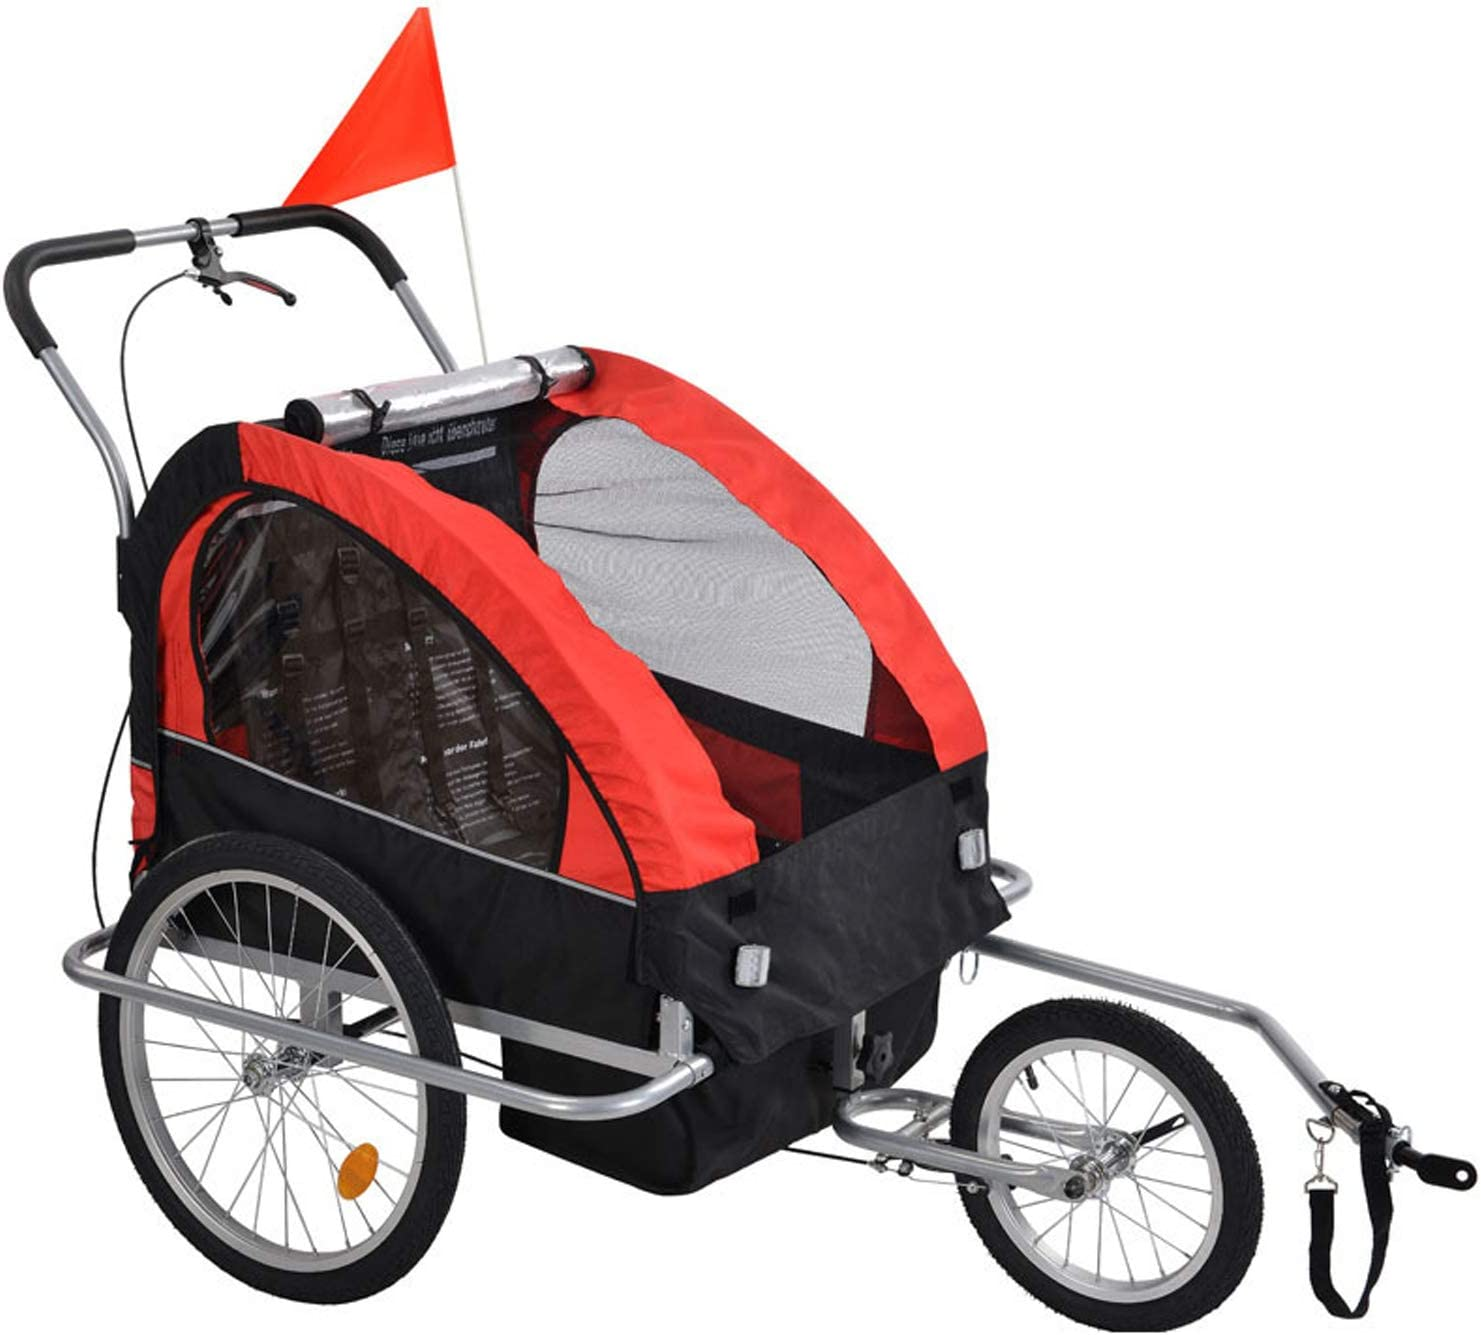 NUEVEN 2-in-1 Double 2 Seat Bicycle Bike Trailer Jogger Stroller with Handle Bar and Wheels Bike Hitch Safety Flag, 20 Inch Wheel Size, Foldable Bike Wagon Trailer